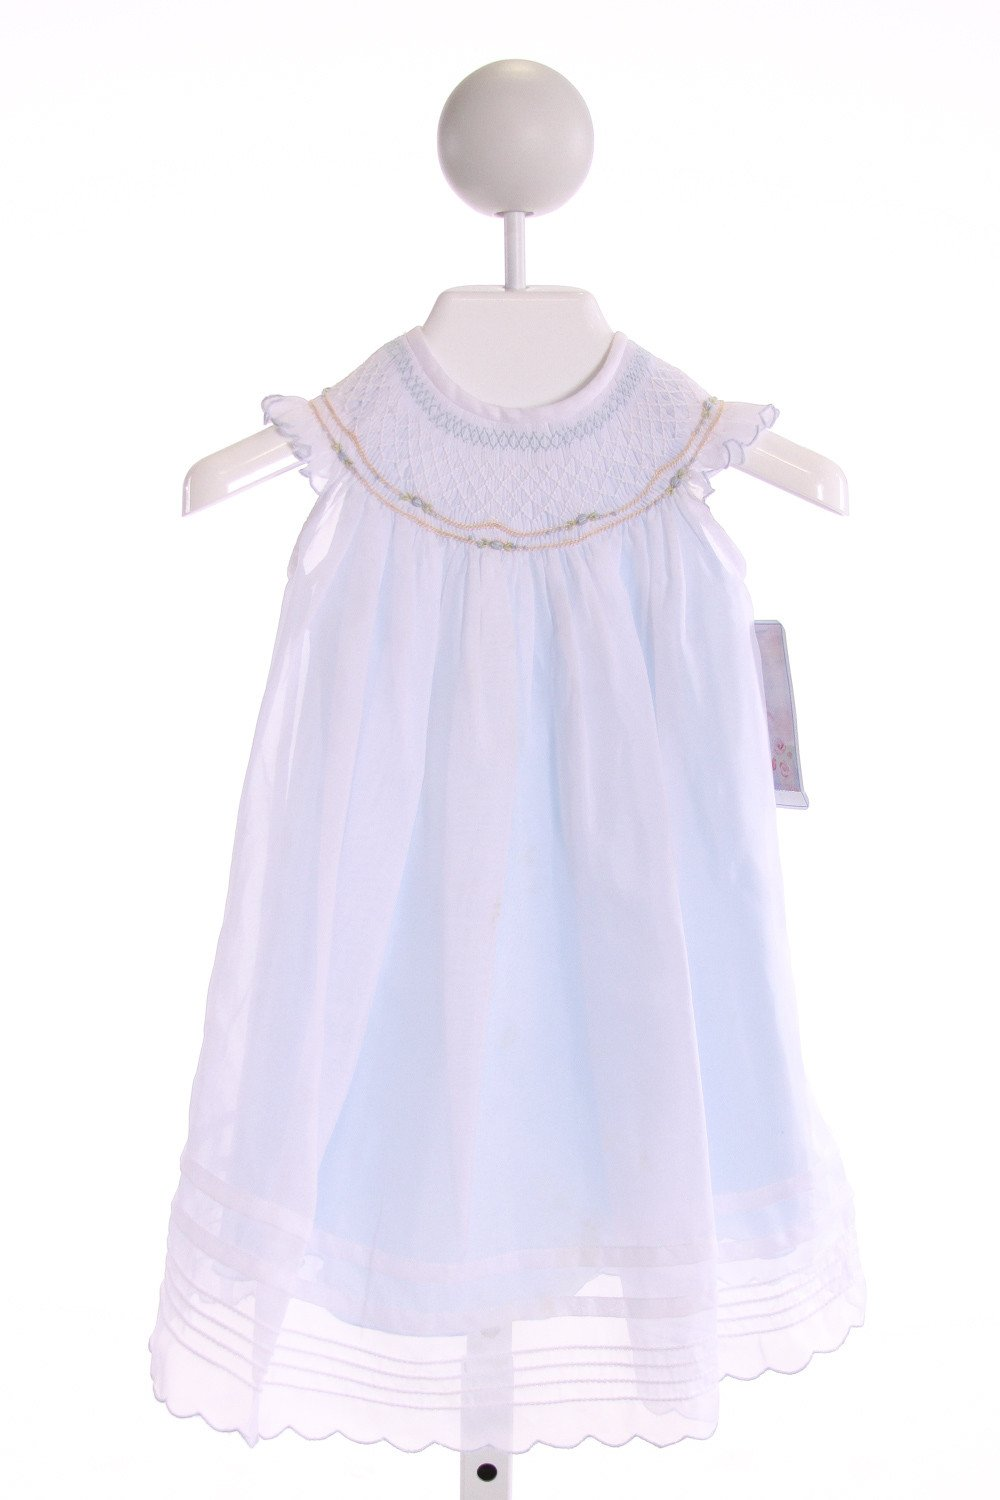 WILLBETH  LT BLUE   SMOCKED DRESS WITH RUFFLE